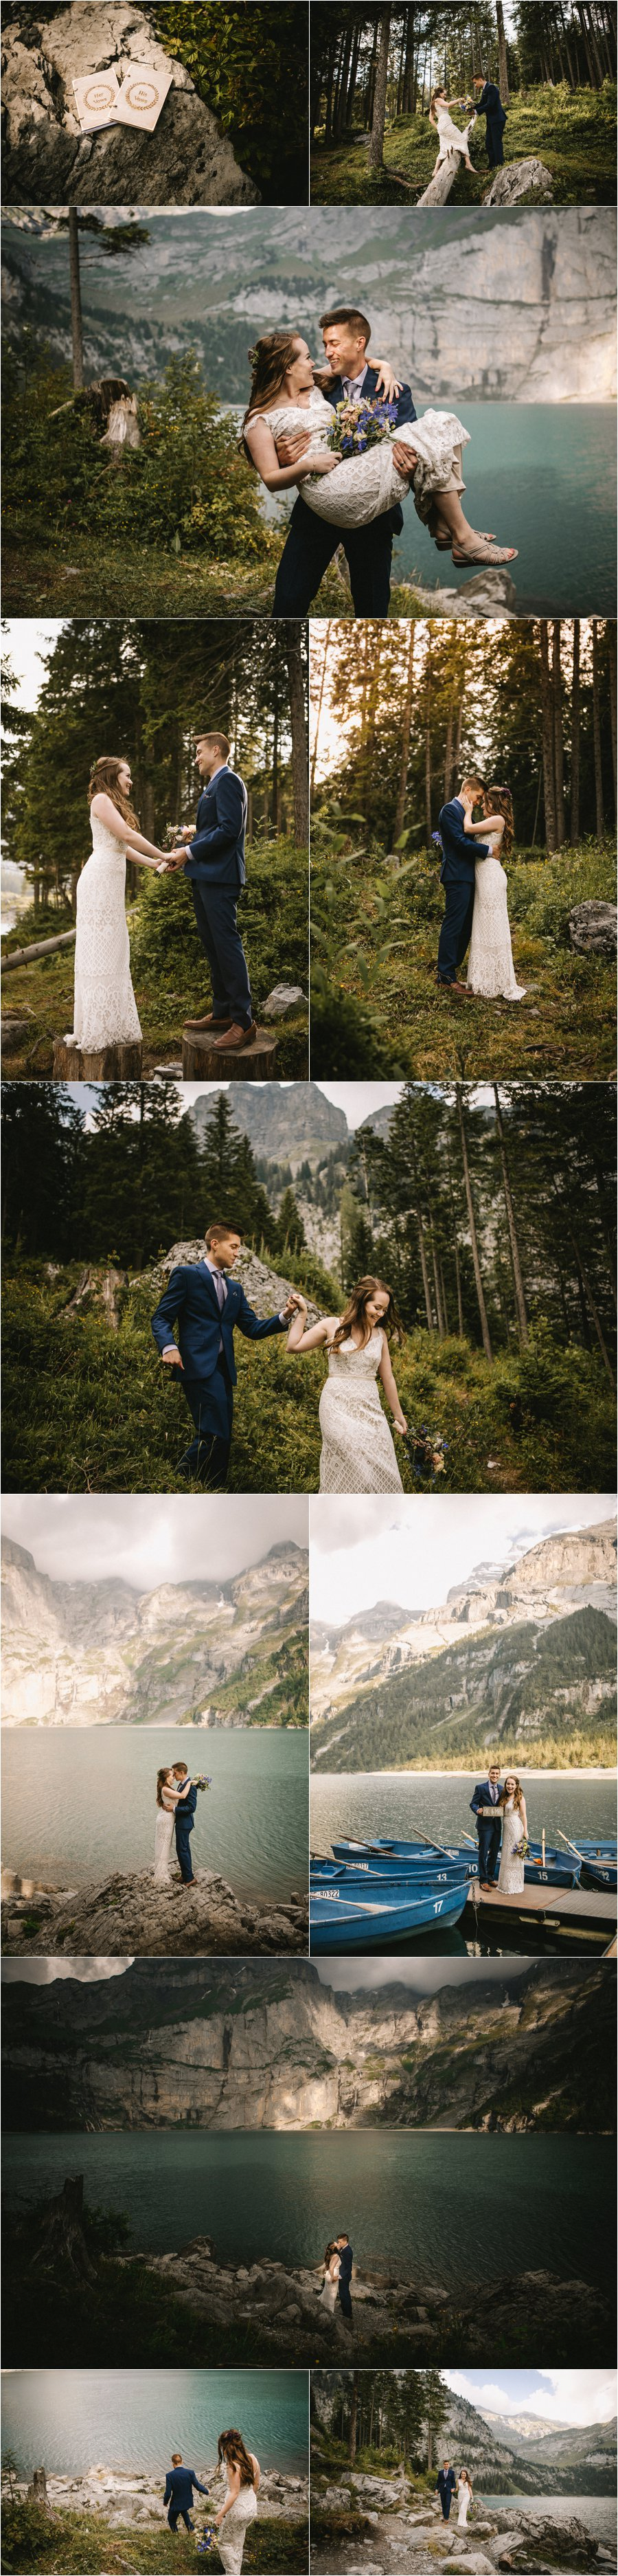 The newly weds walk through a forest in the Swiss Alps by Bendik Photography